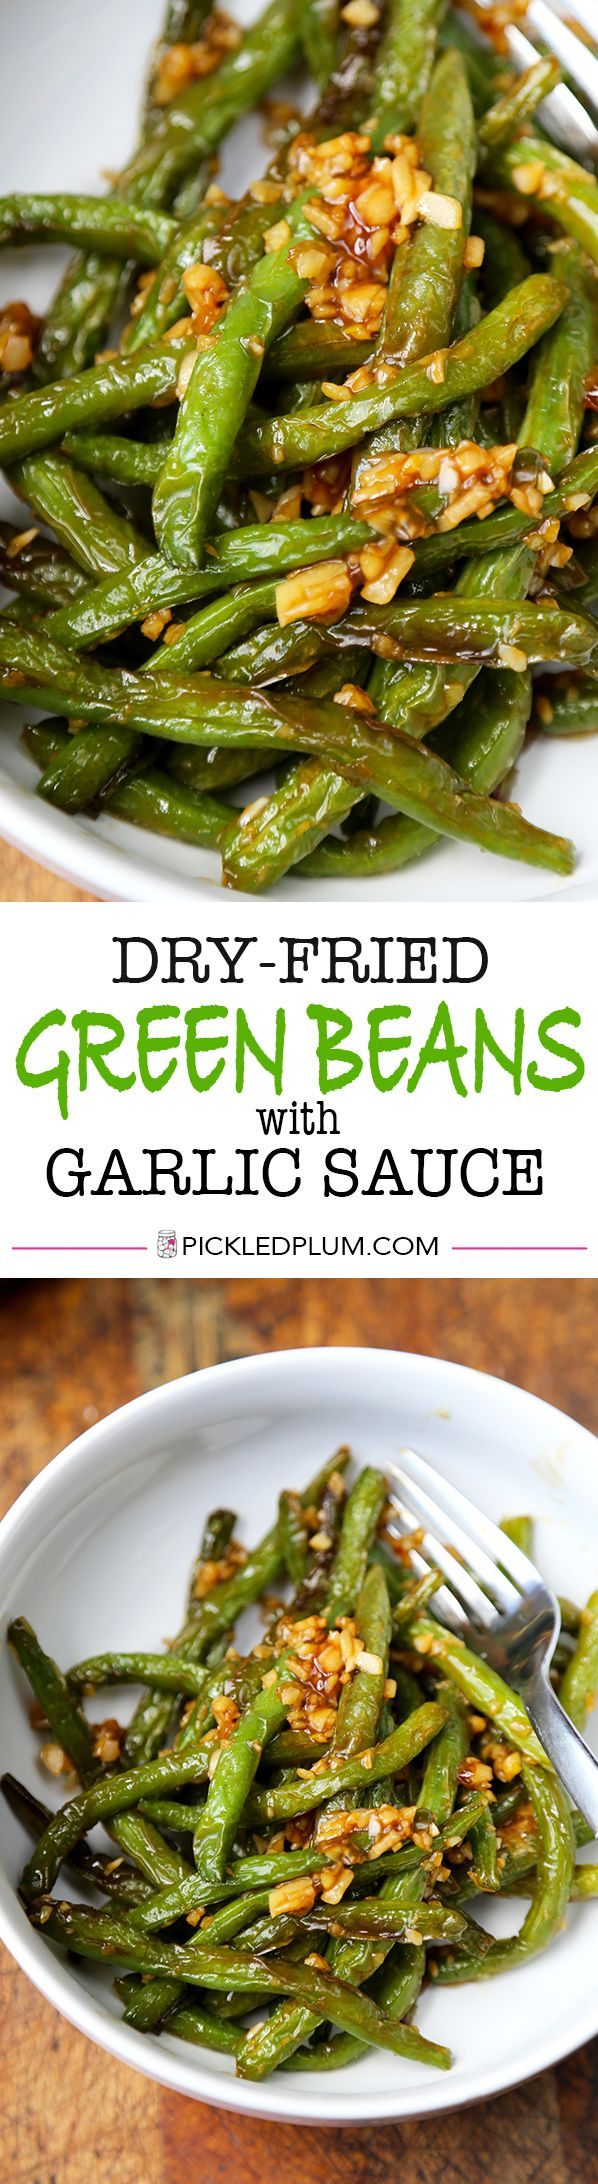 This is an easy and classic preparation for Chinese dry-fried green beans sauteed in soy, garlic and sesame oil. Tasty, salty, and tender dry-fried green beans